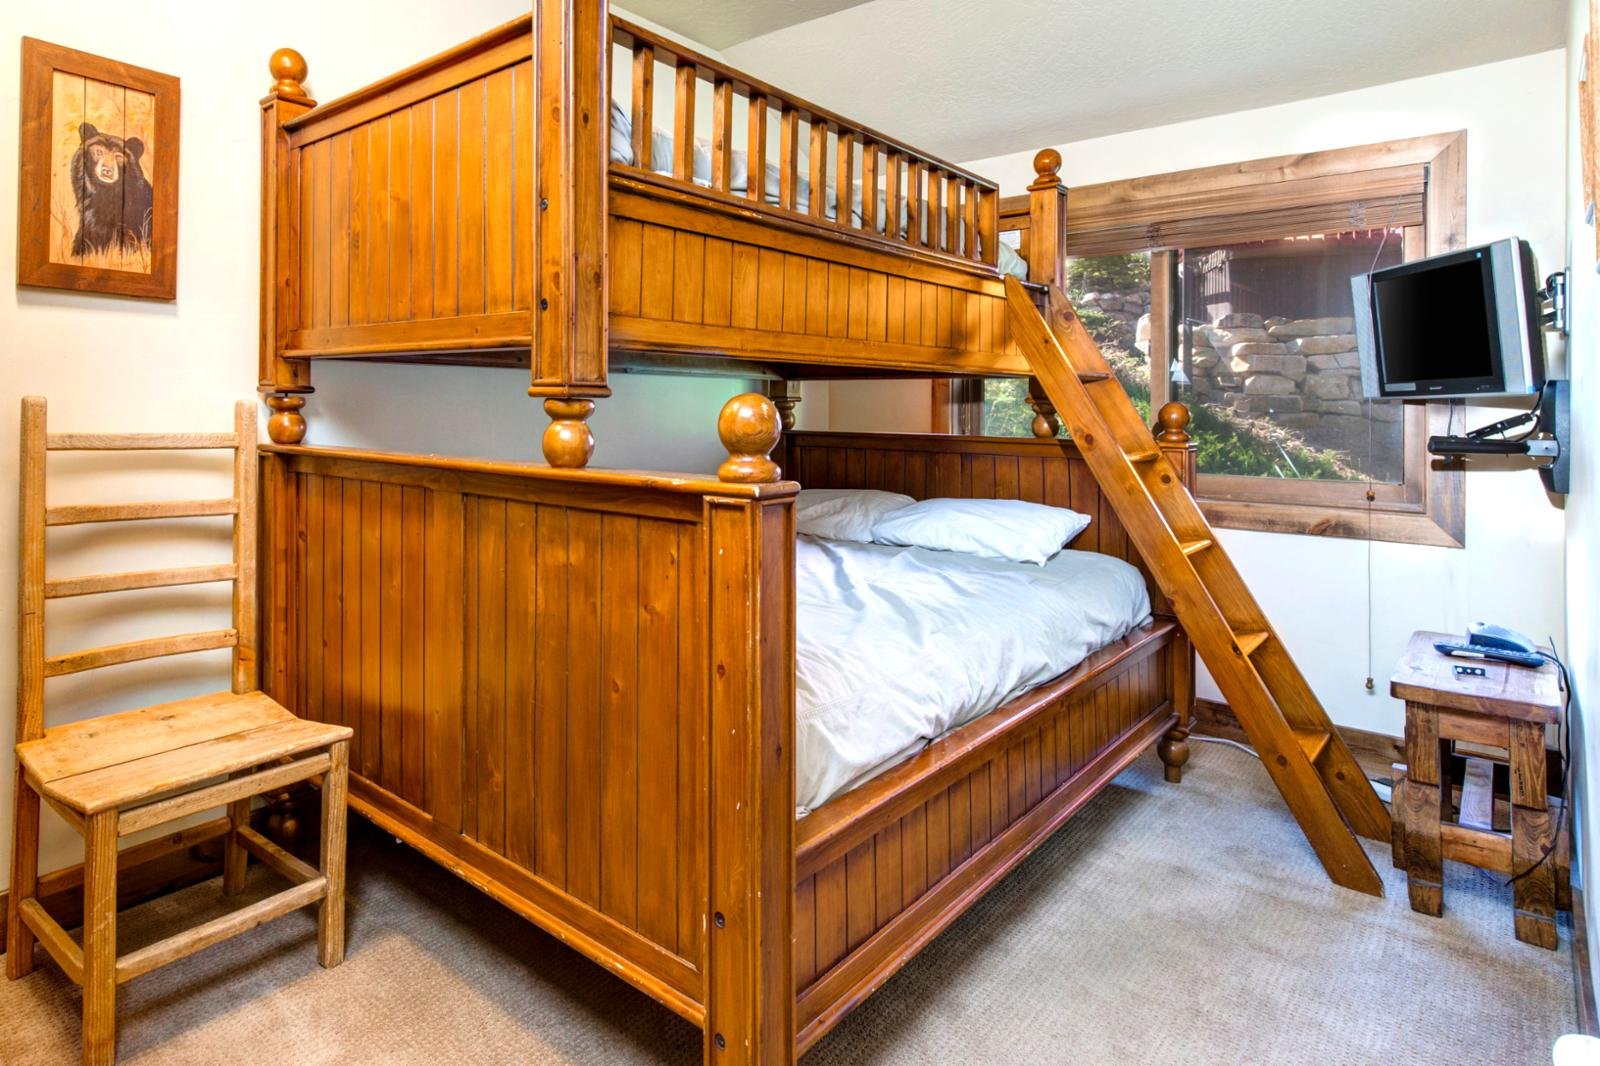 Fun bunk room with easy steps up